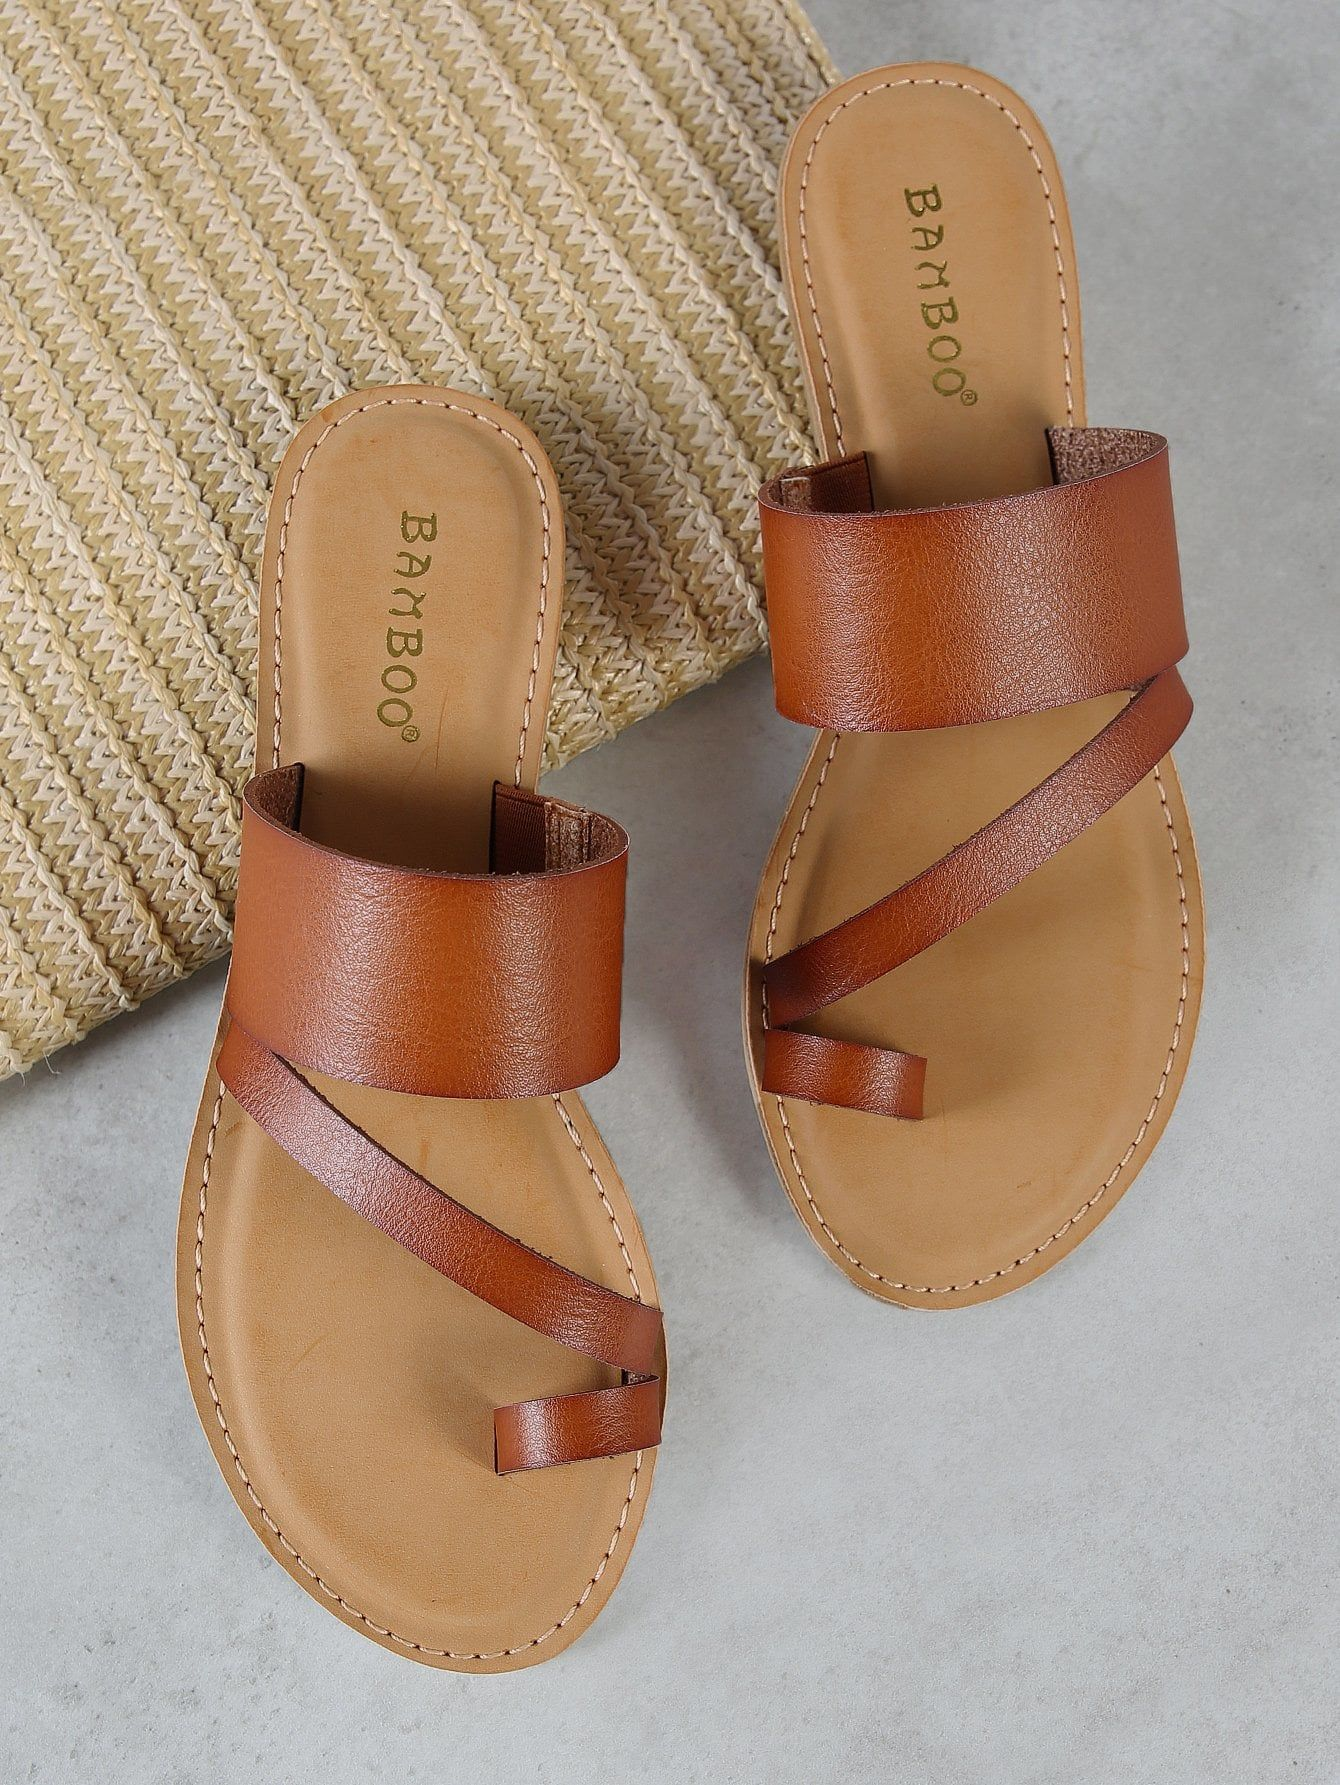 93cb87675 Online shopping for Strappy Slide Sandal with Toe Ring from a great  selection of women s fashion clothing   more at MakeMeChic.COM.